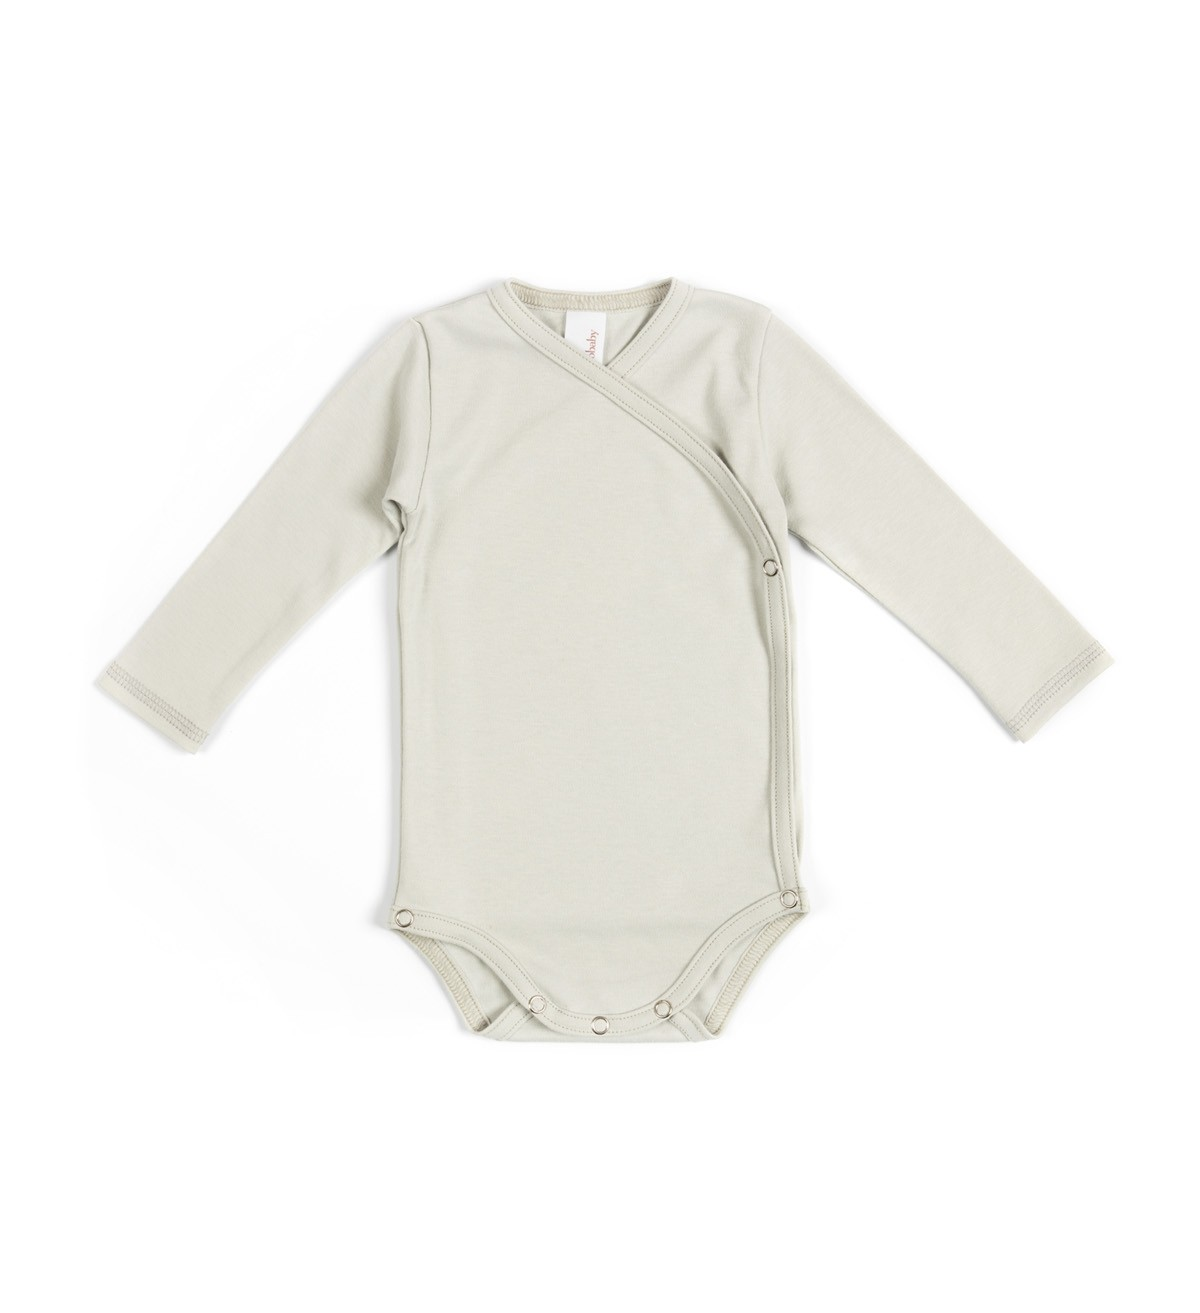 Baobaby - Body benkica DR - Light Grey